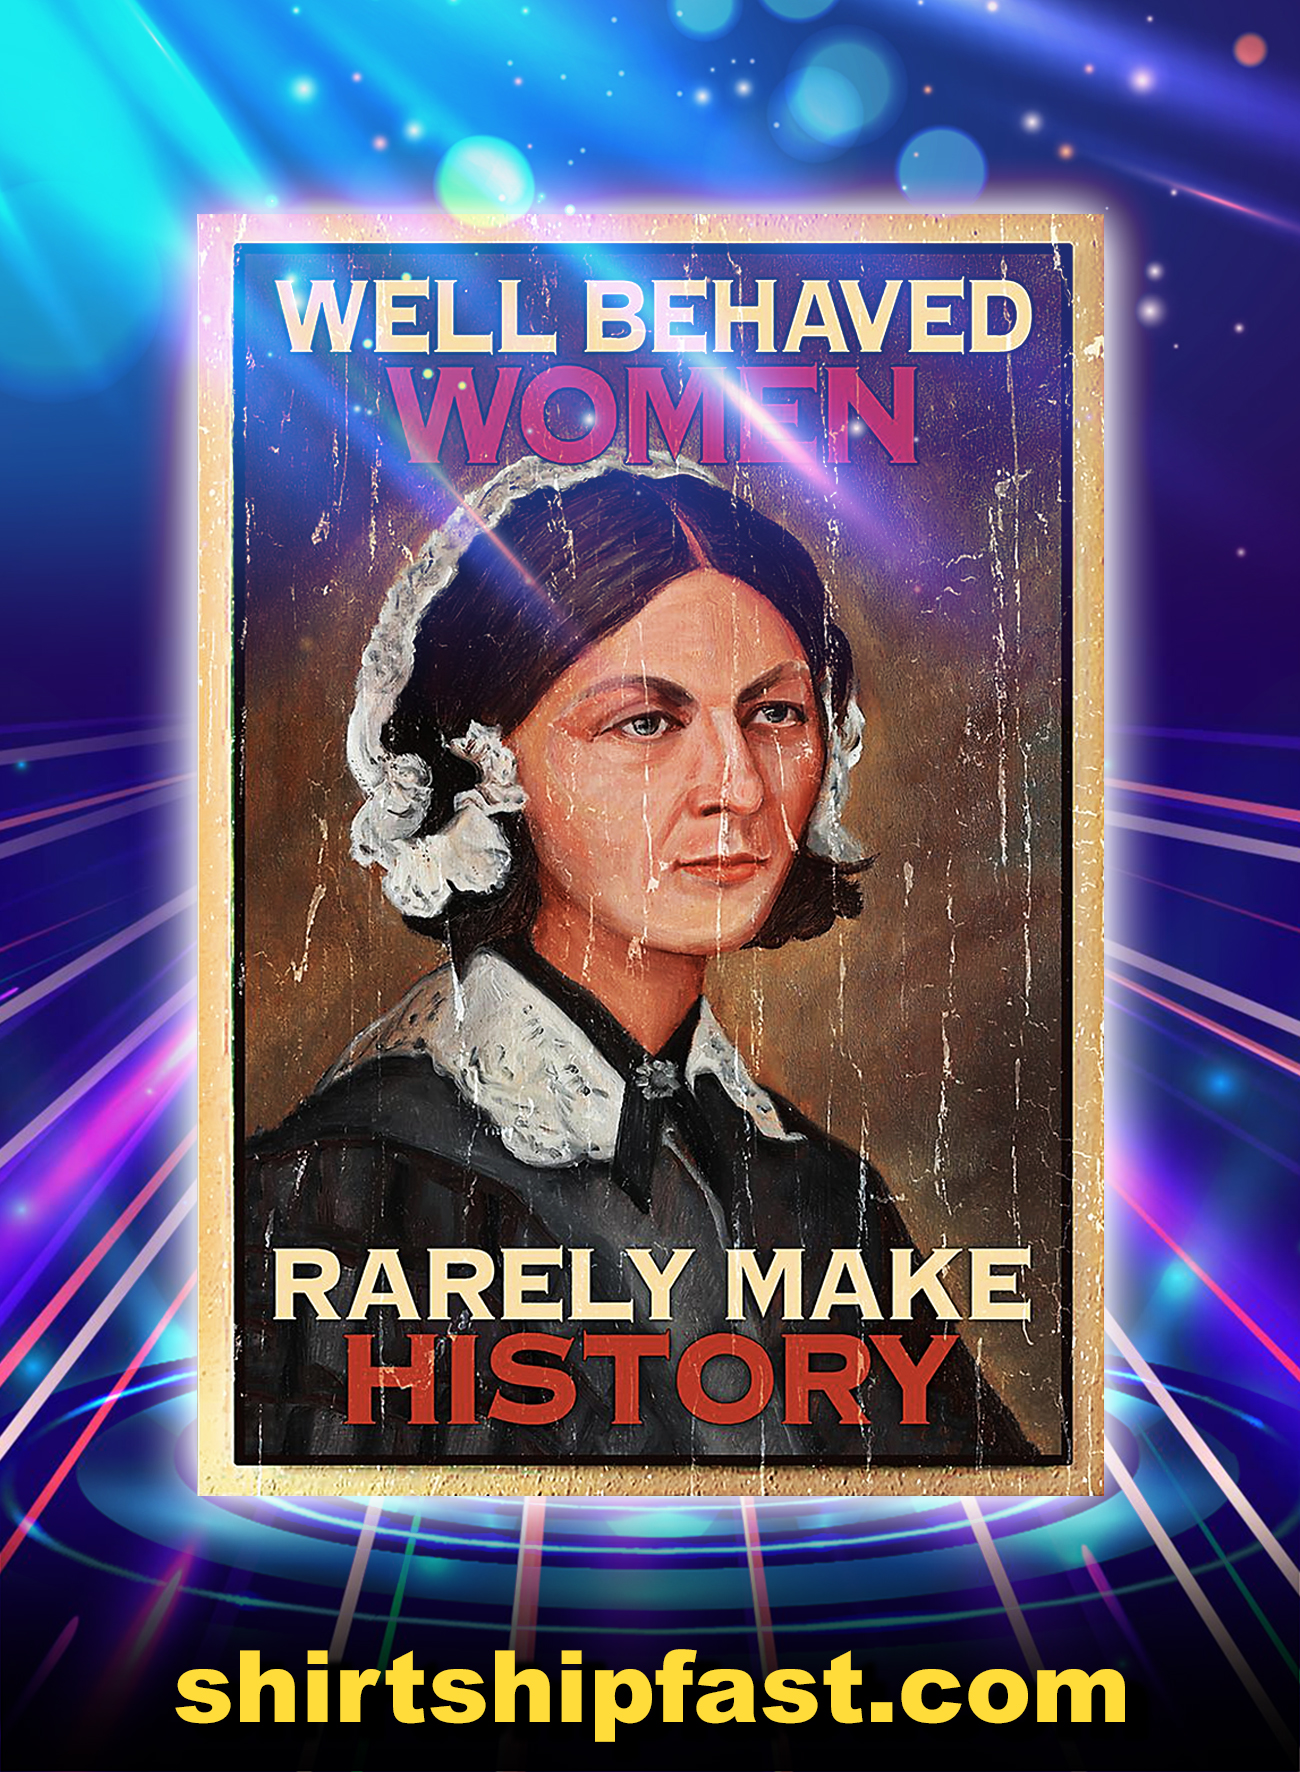 Nurse Well behaved women rarely make history poster - A4